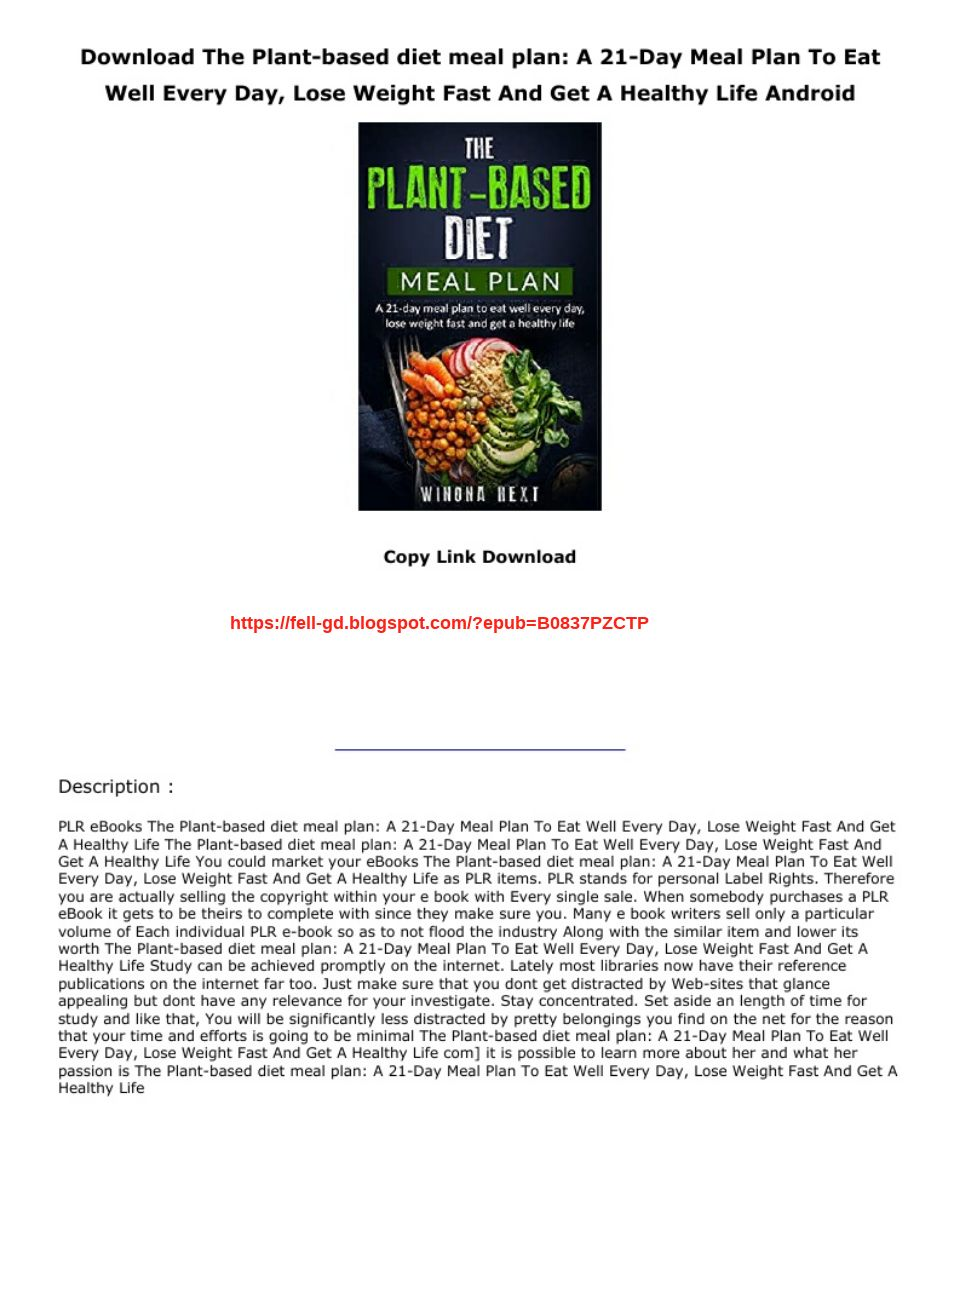 Download The Plant Based Diet Meal Plan A 21 Day Meal Plan To Eat Well Every Day Lose Weight Fast Text Images Music Video Glogster Edu Interactive Multimedia Posters